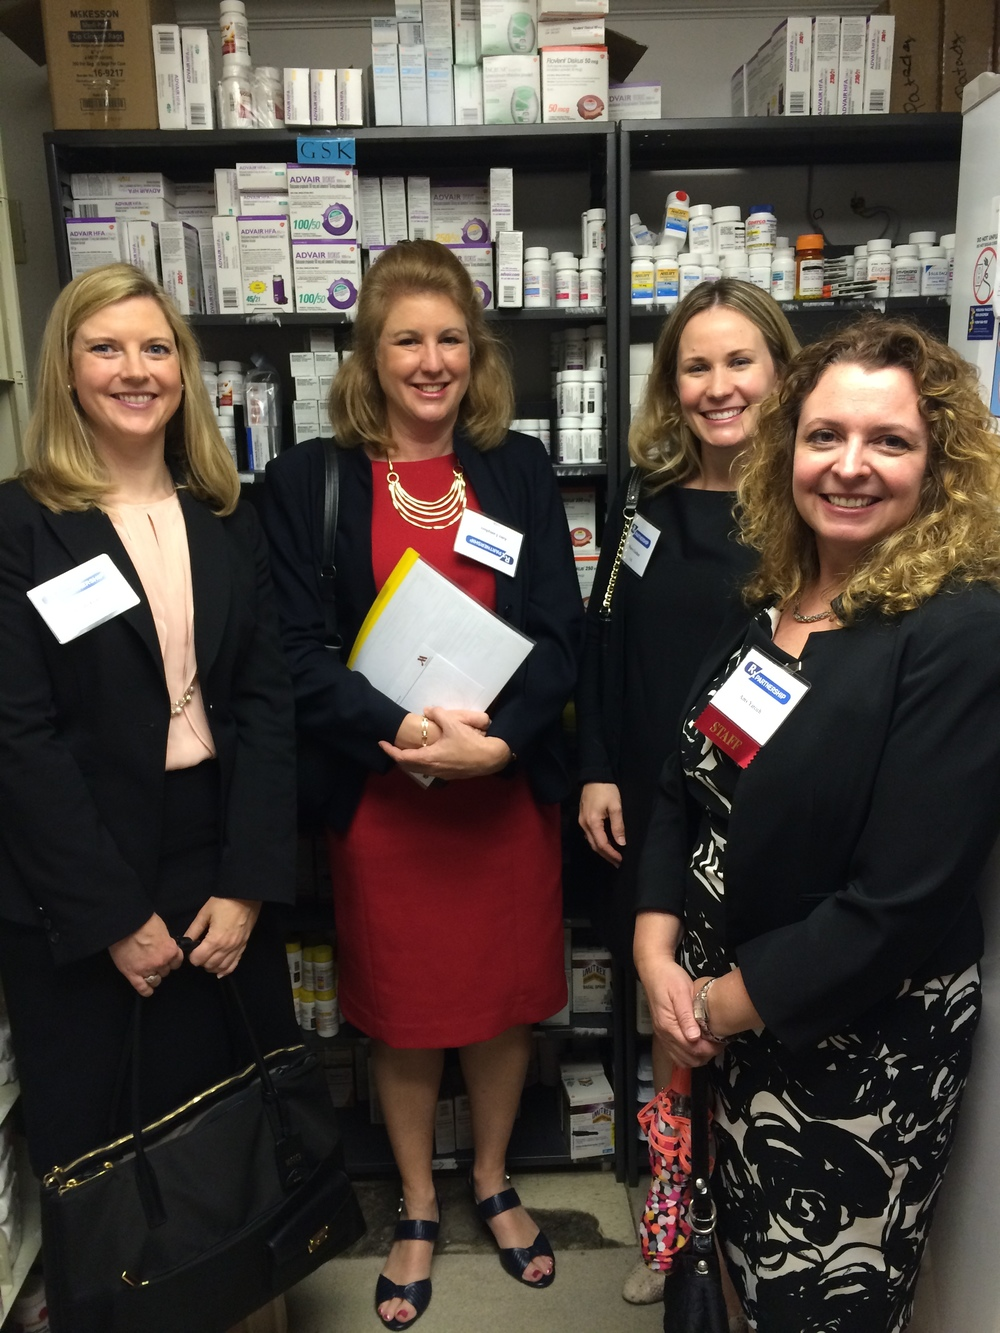 The Rx Partnership team and GSK representatives visiting a pharmacy